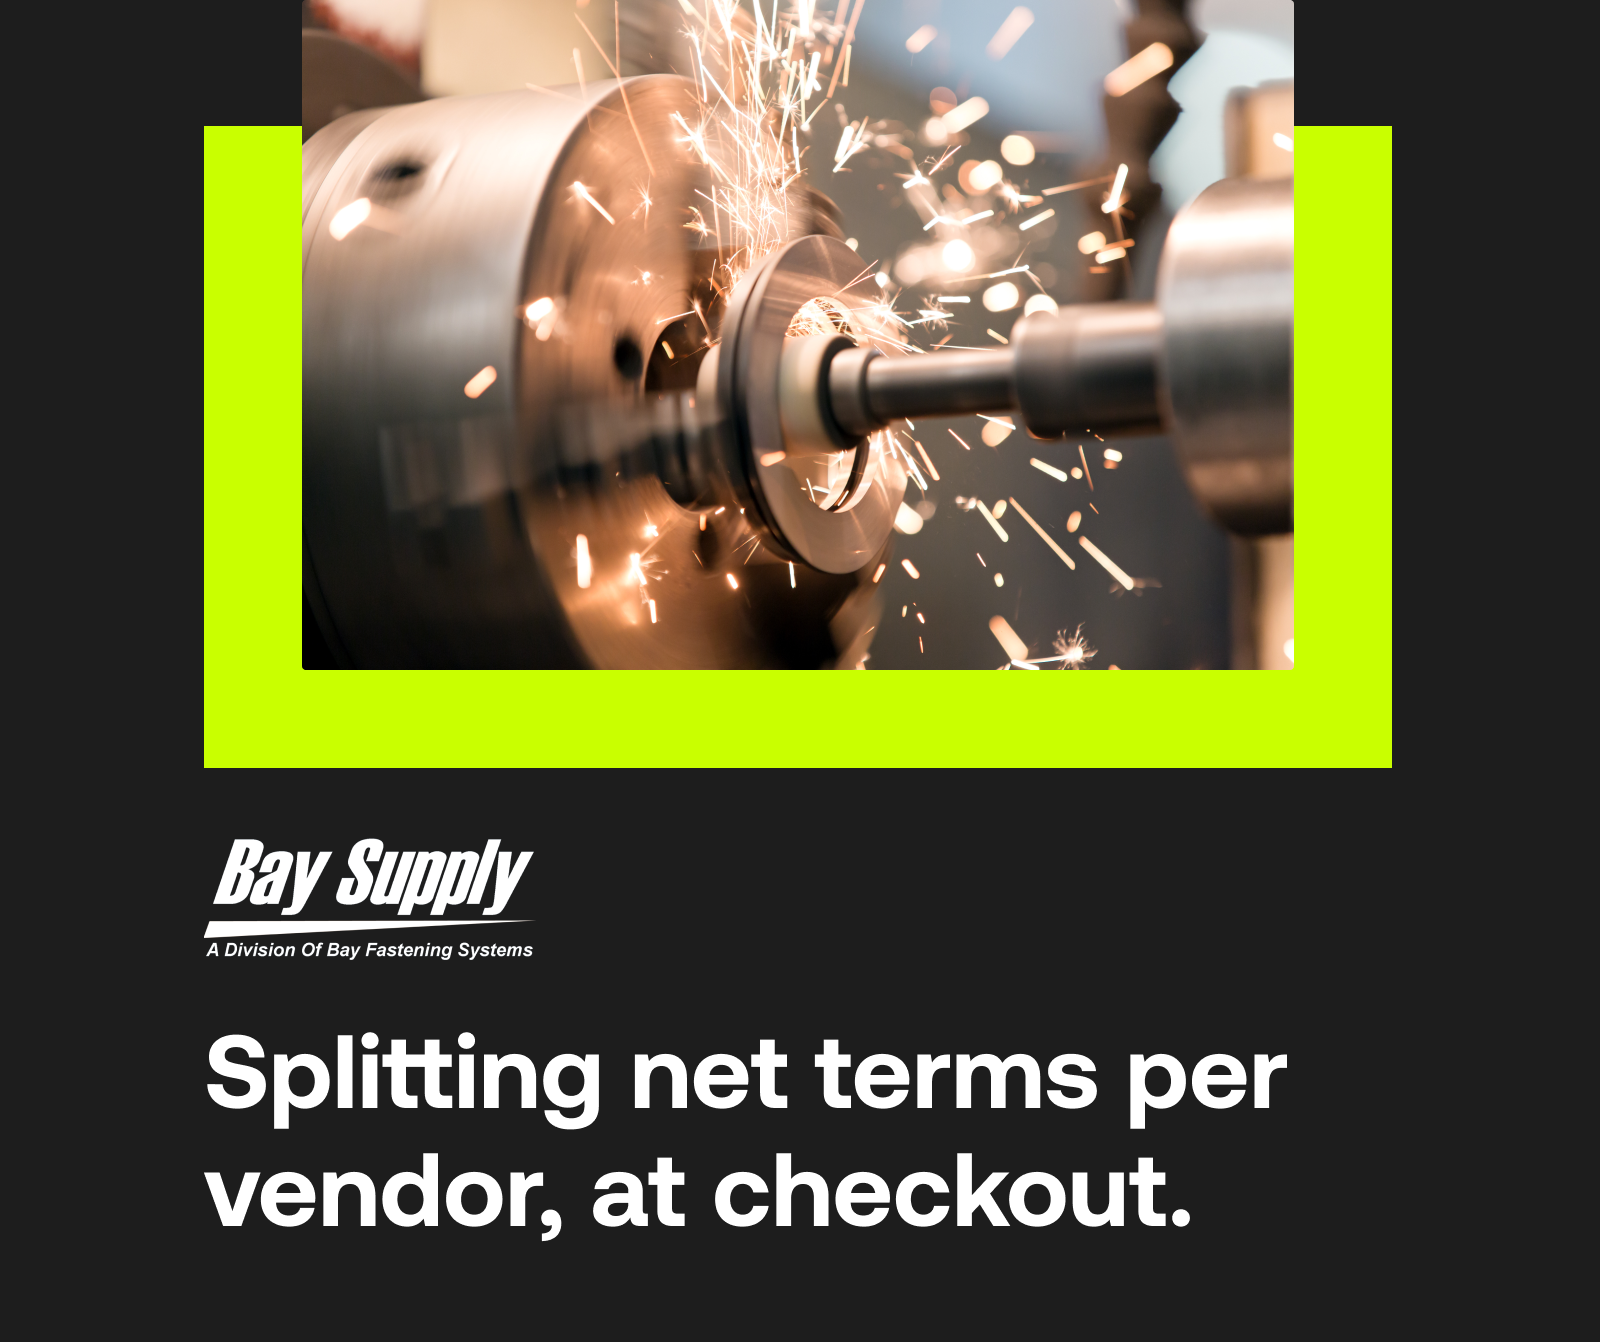 Bay Supply: How a B2B marketplace splits net terms at checkout